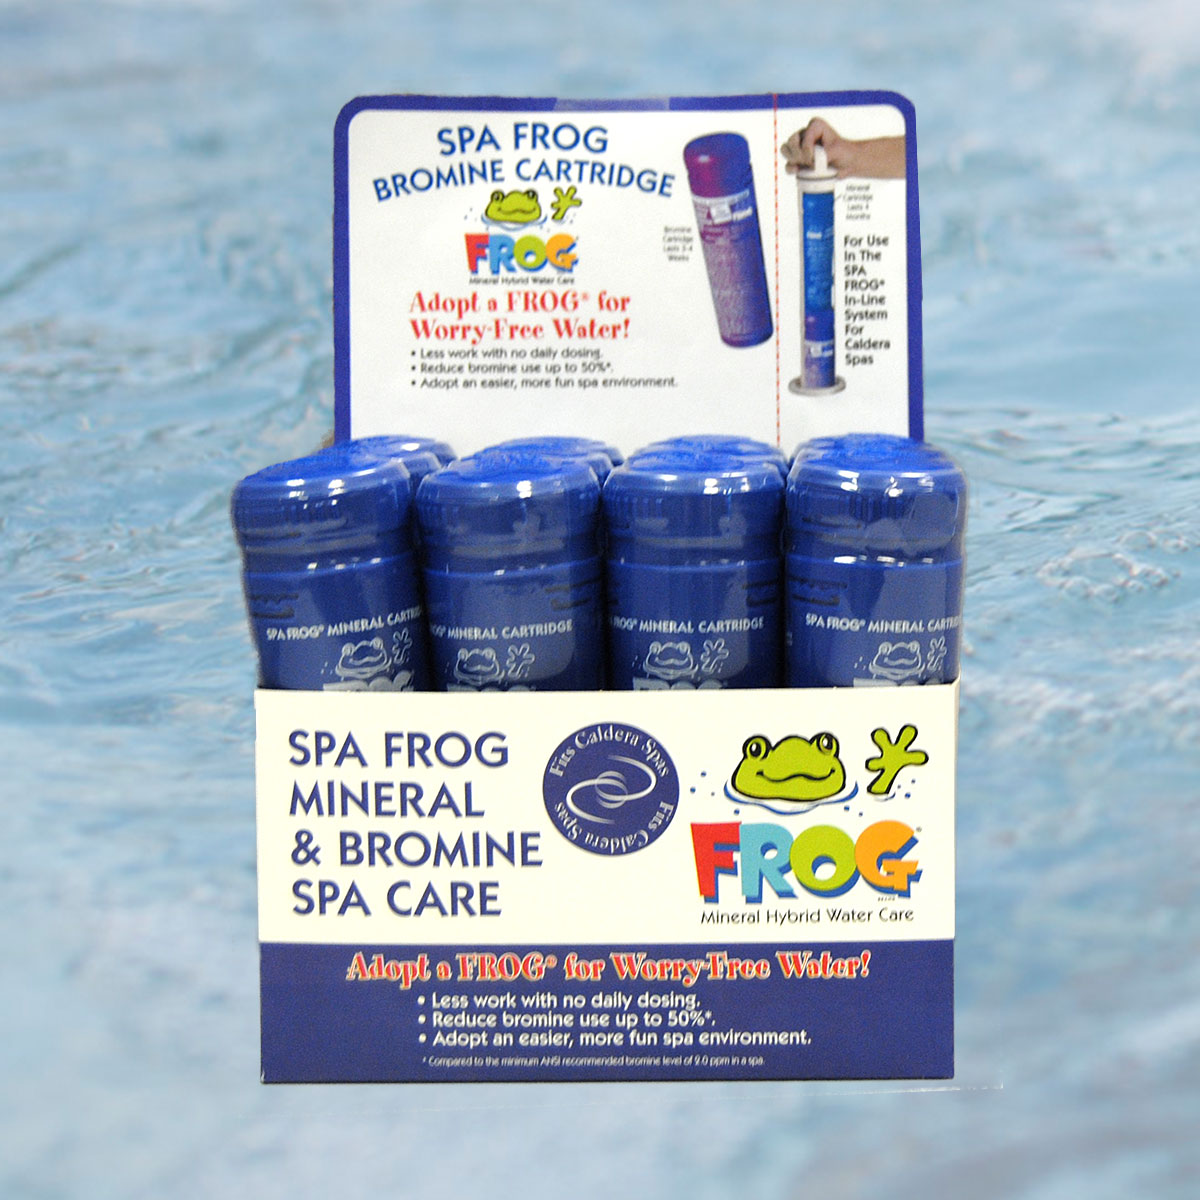 caldera spa frog water care